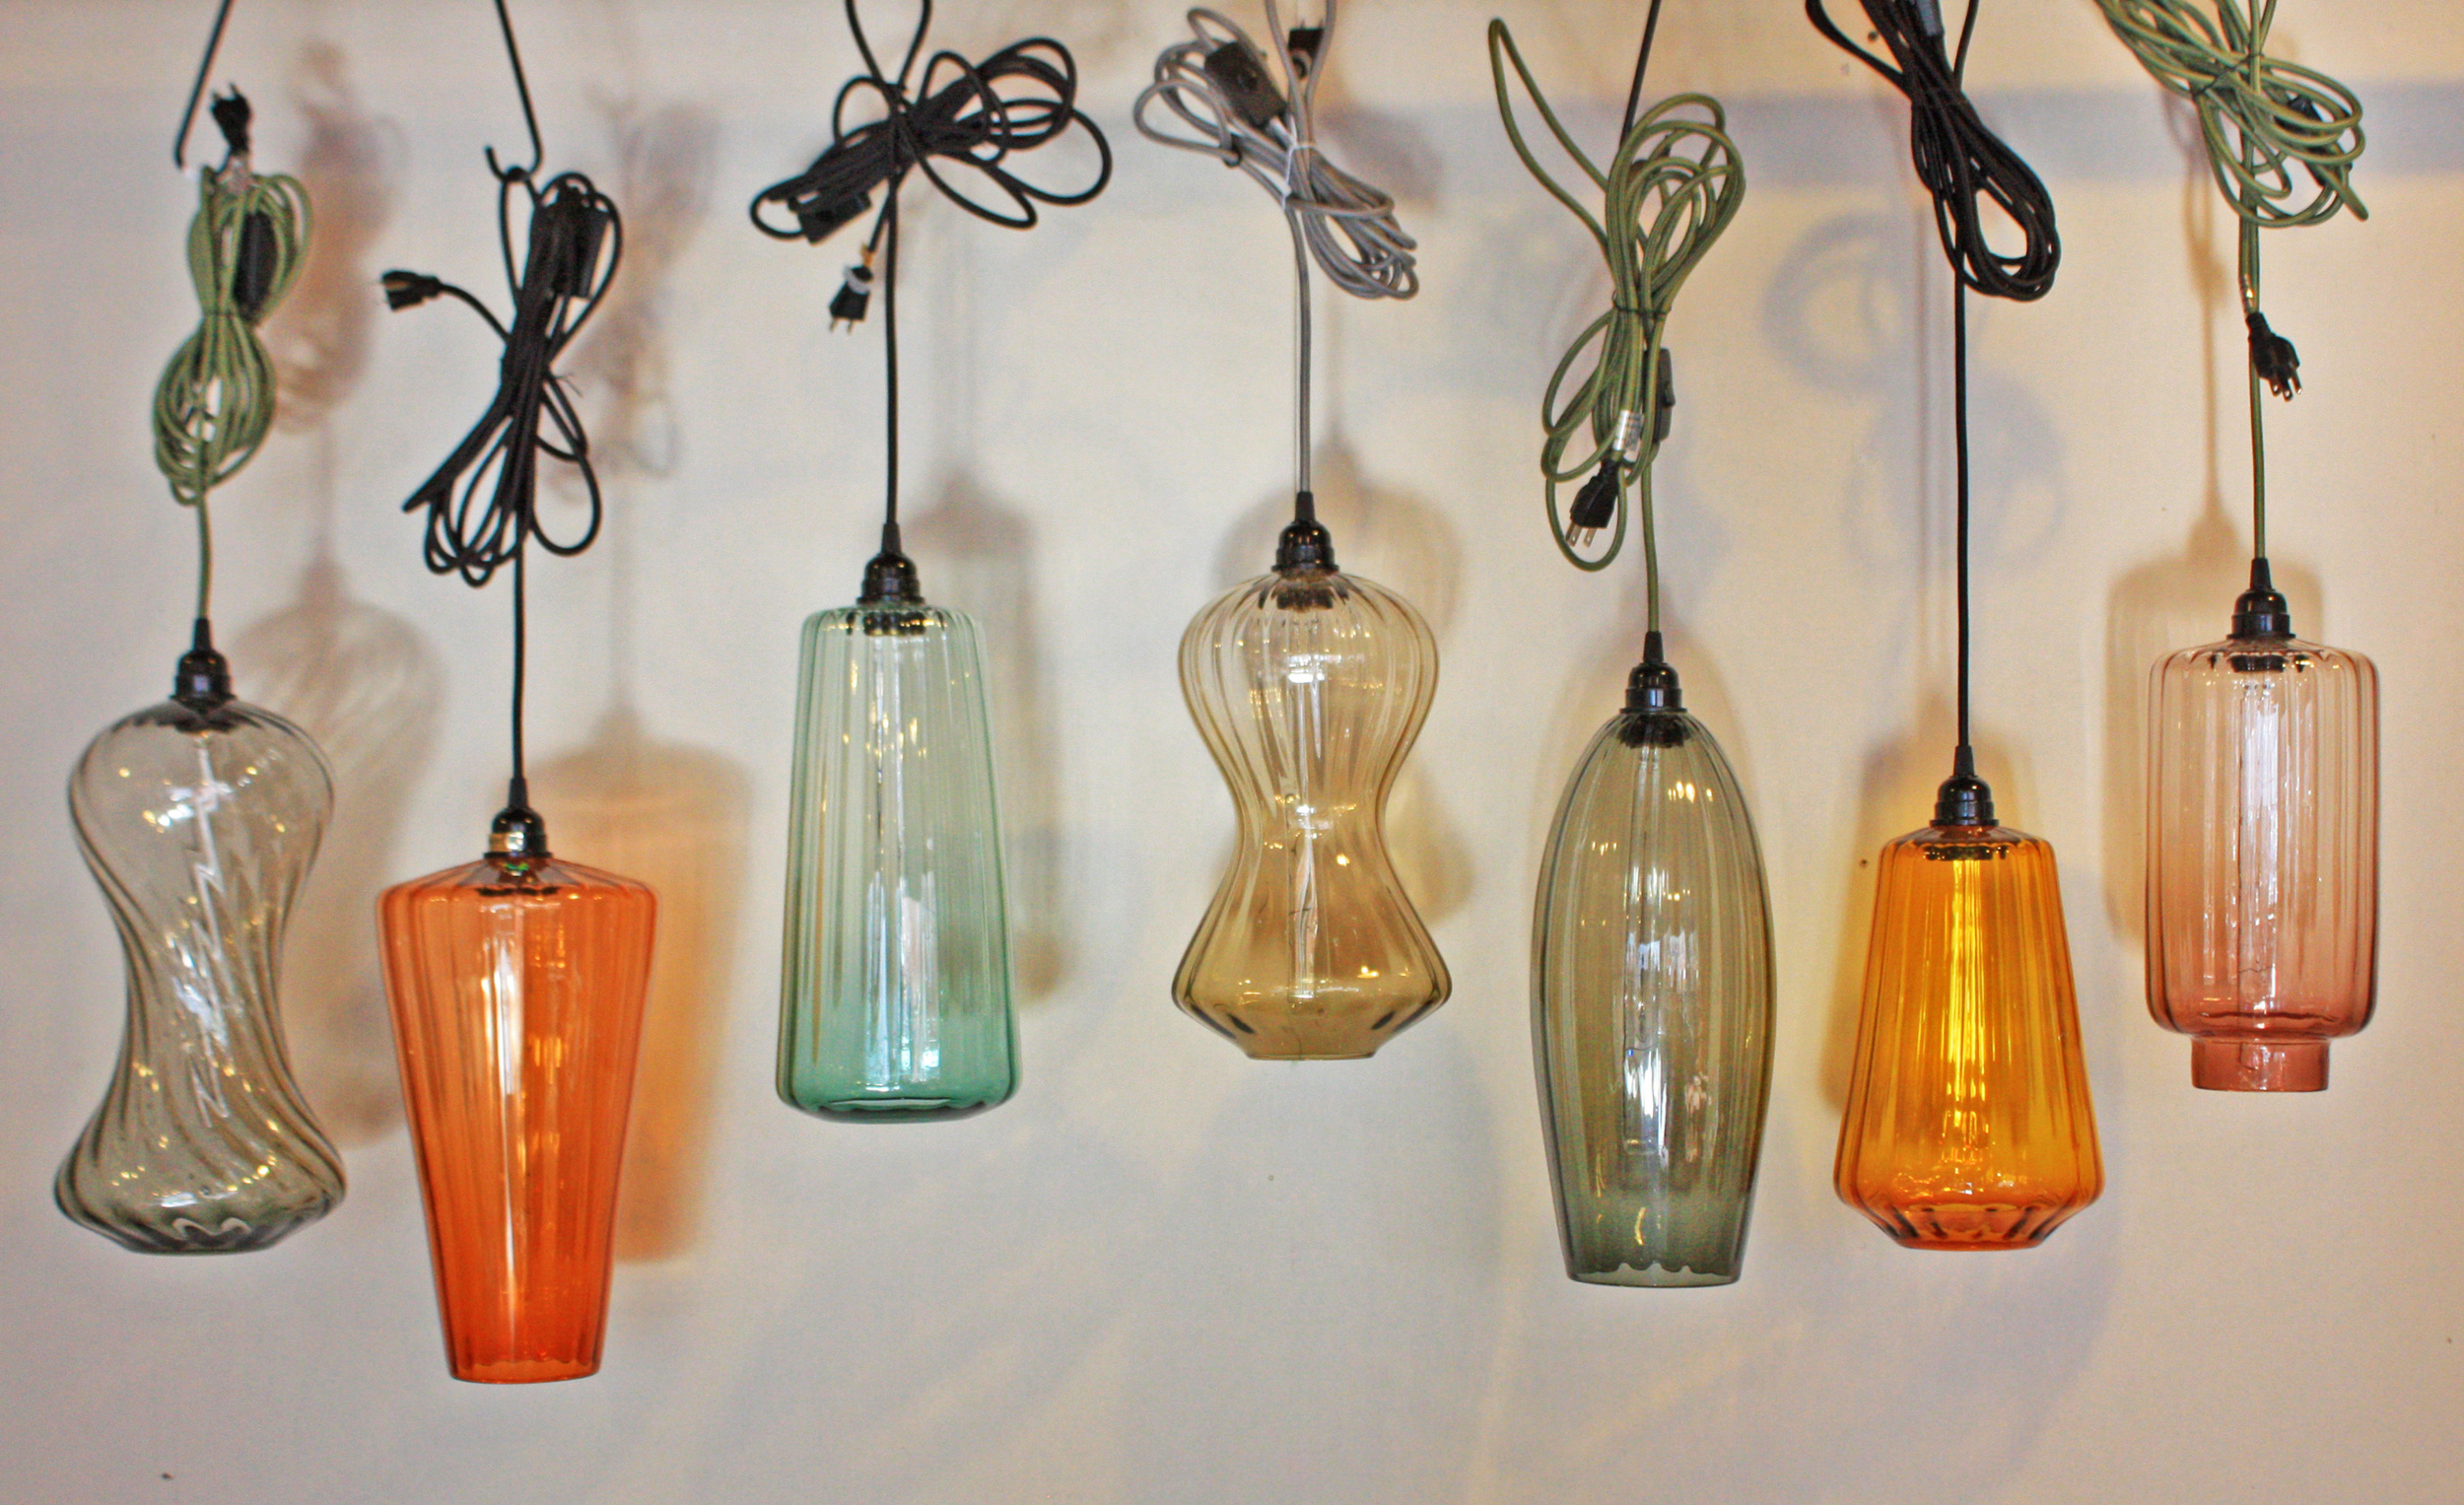 Deco pendants 1